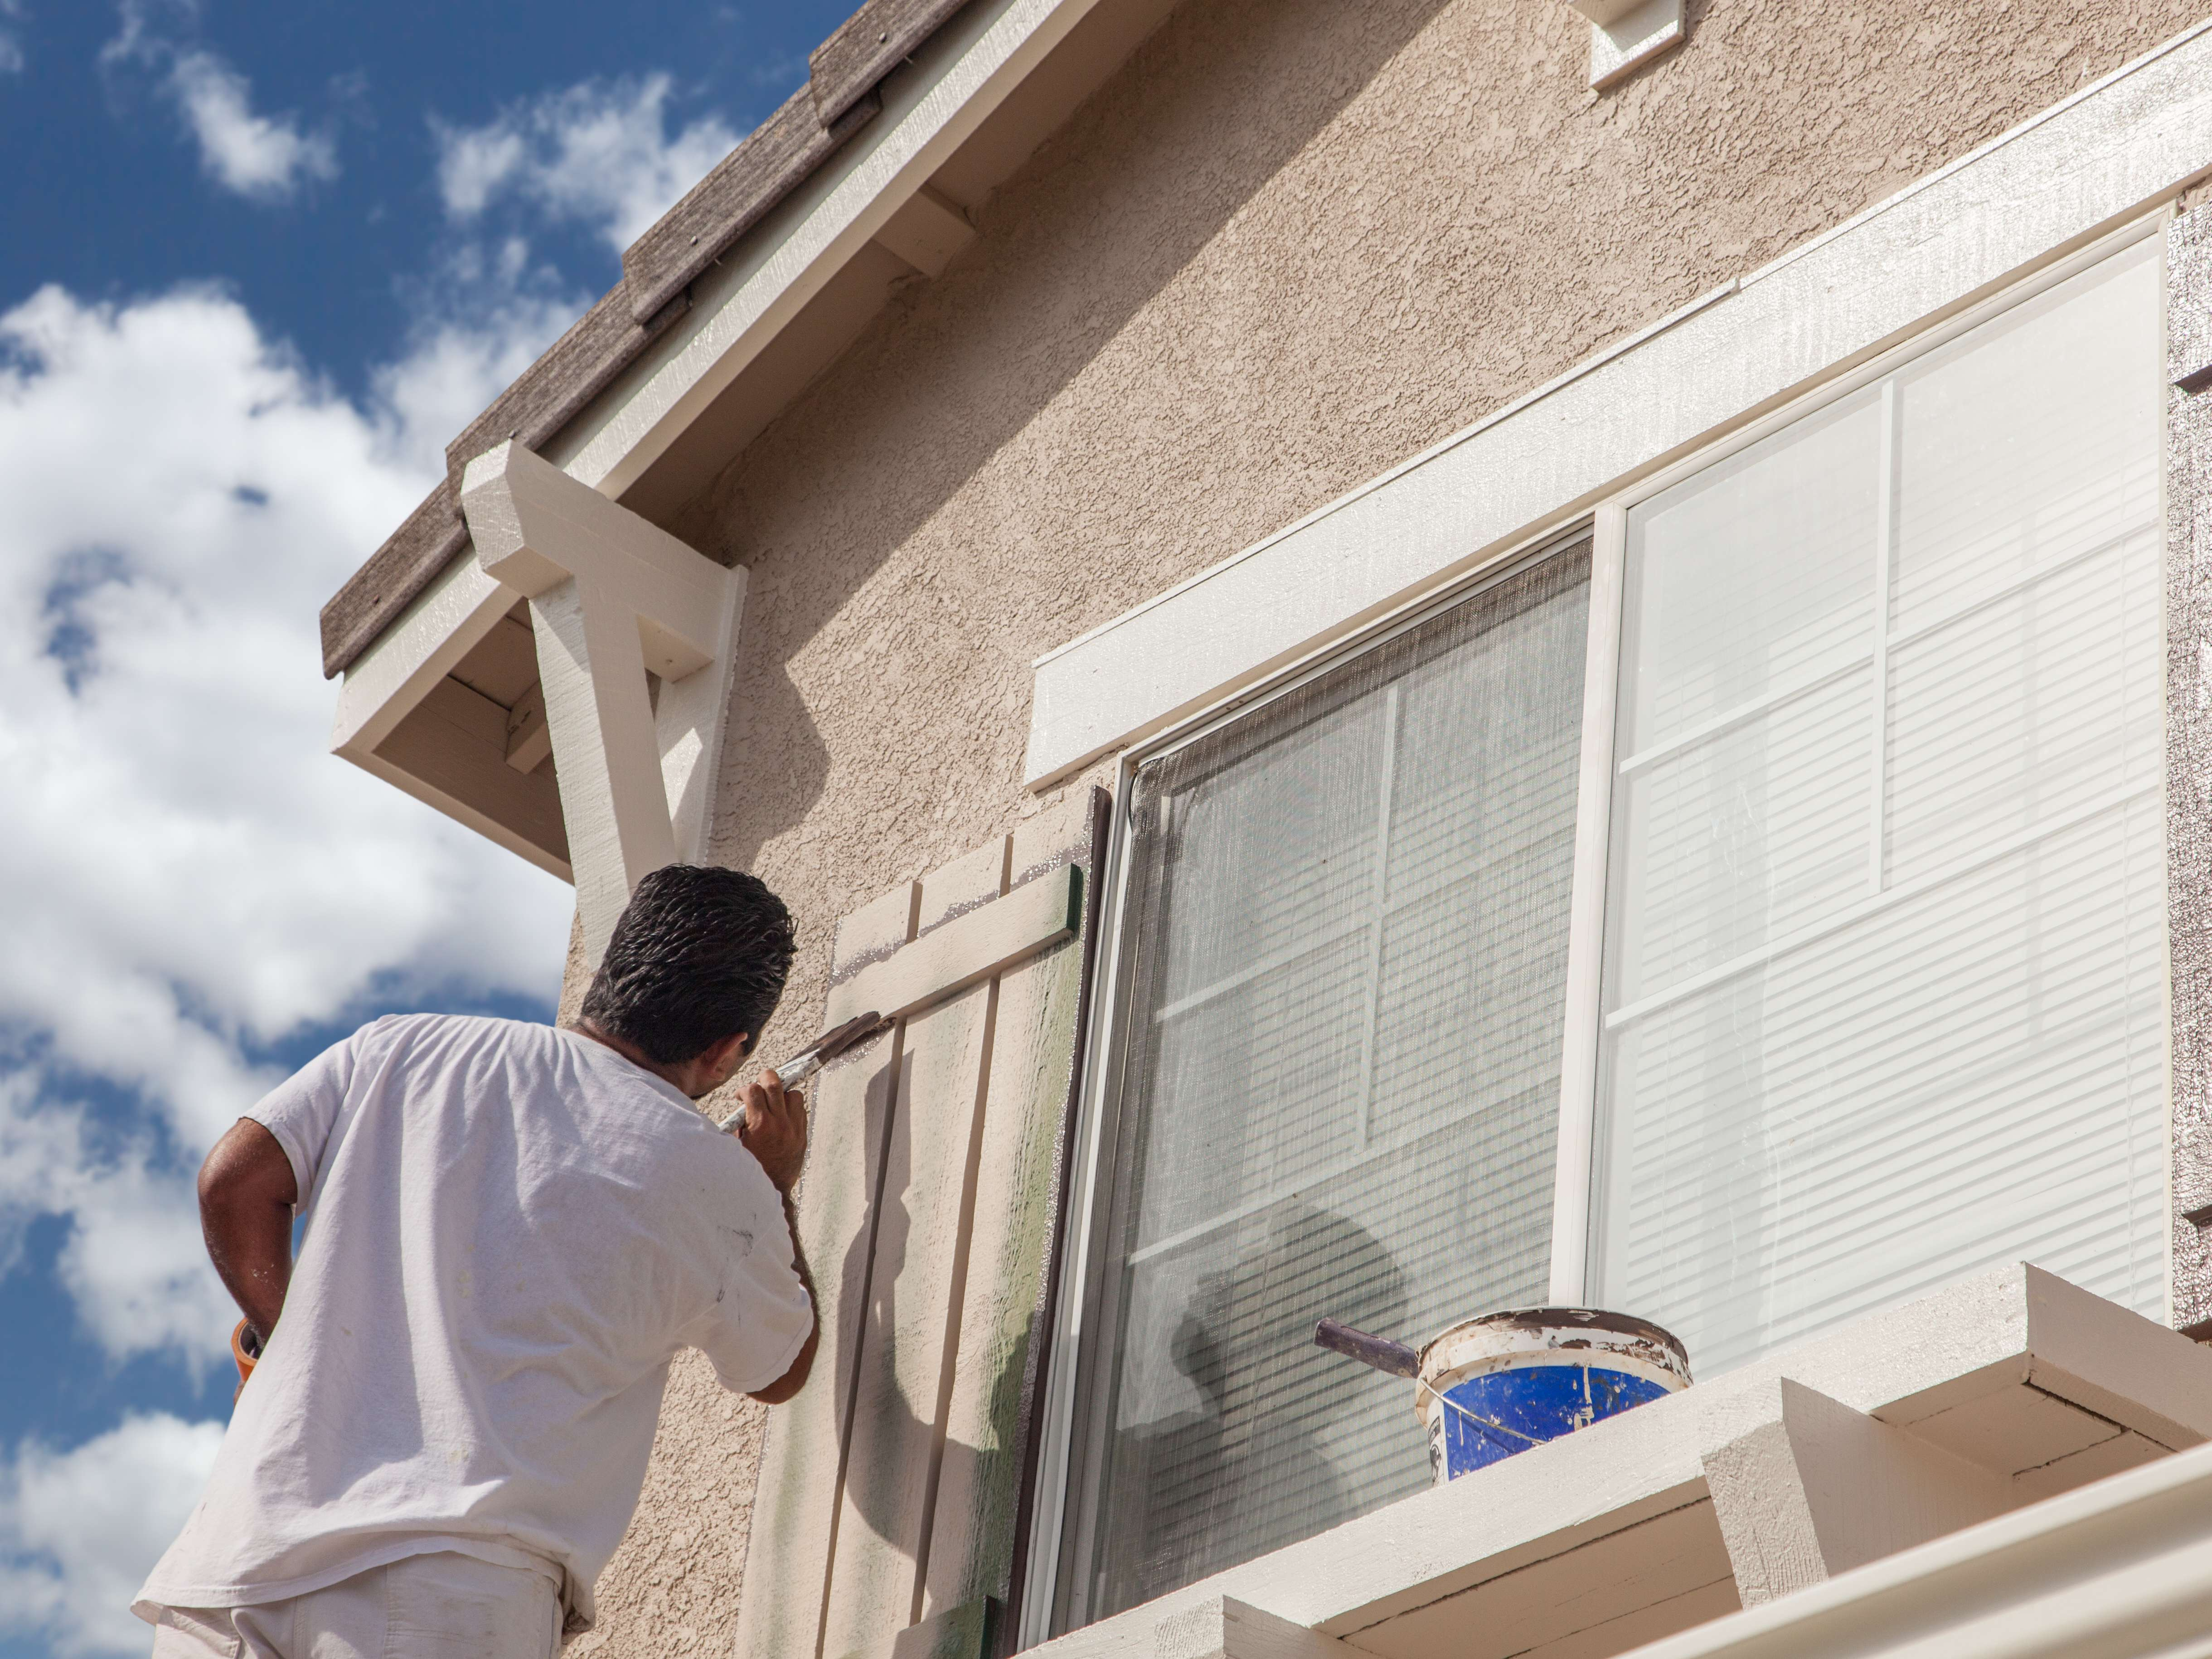 Our home painting services can give your entire home a face-lift.